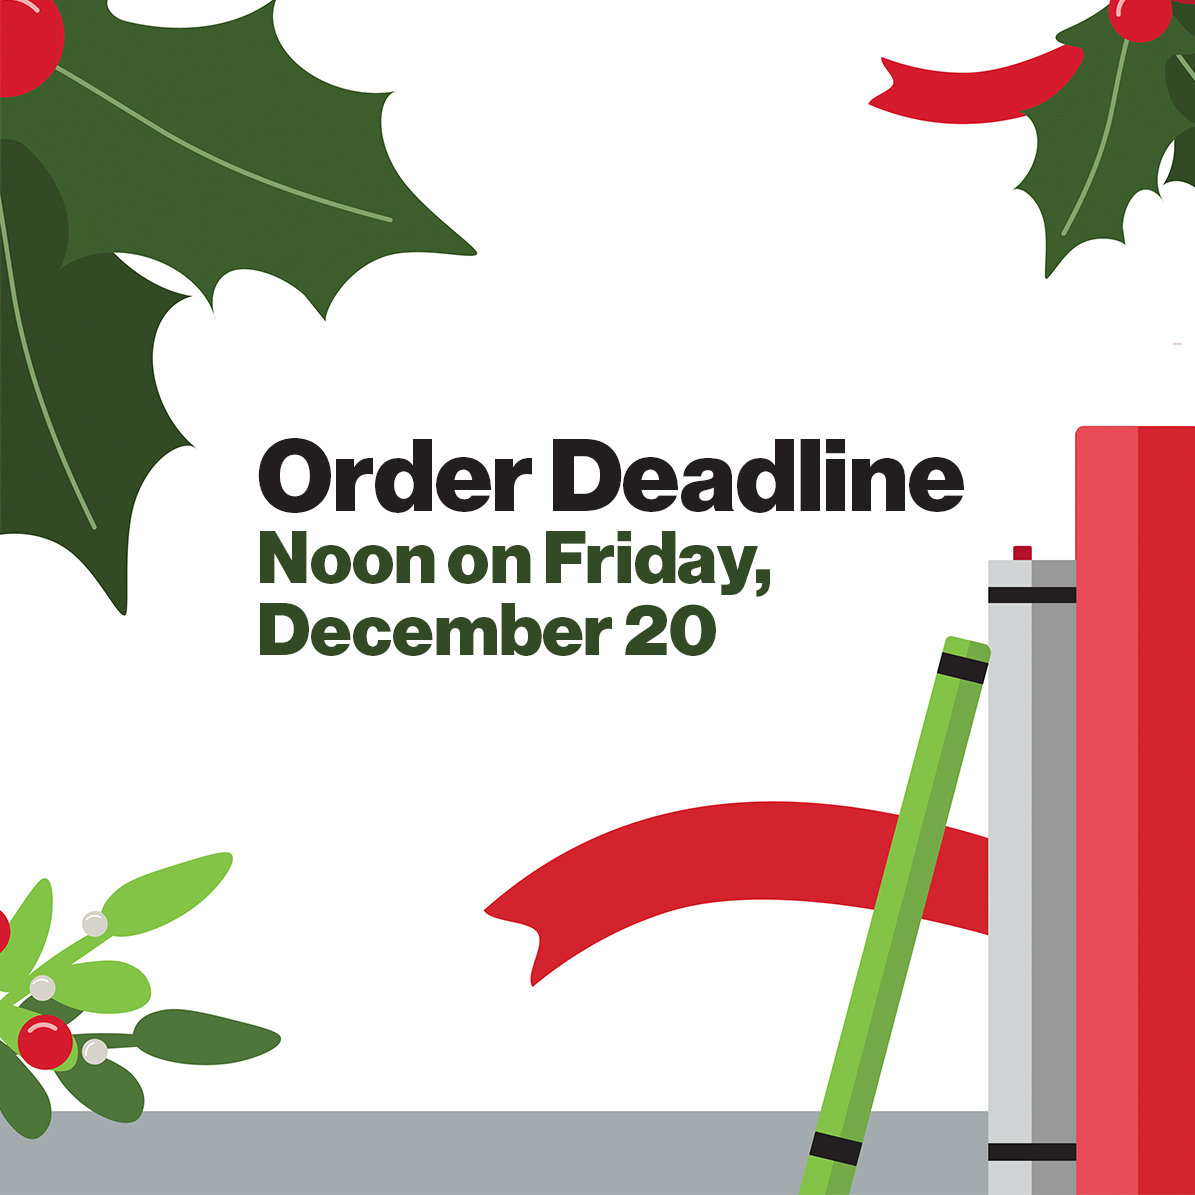 Order Deadline: Noon on Friday, December 20